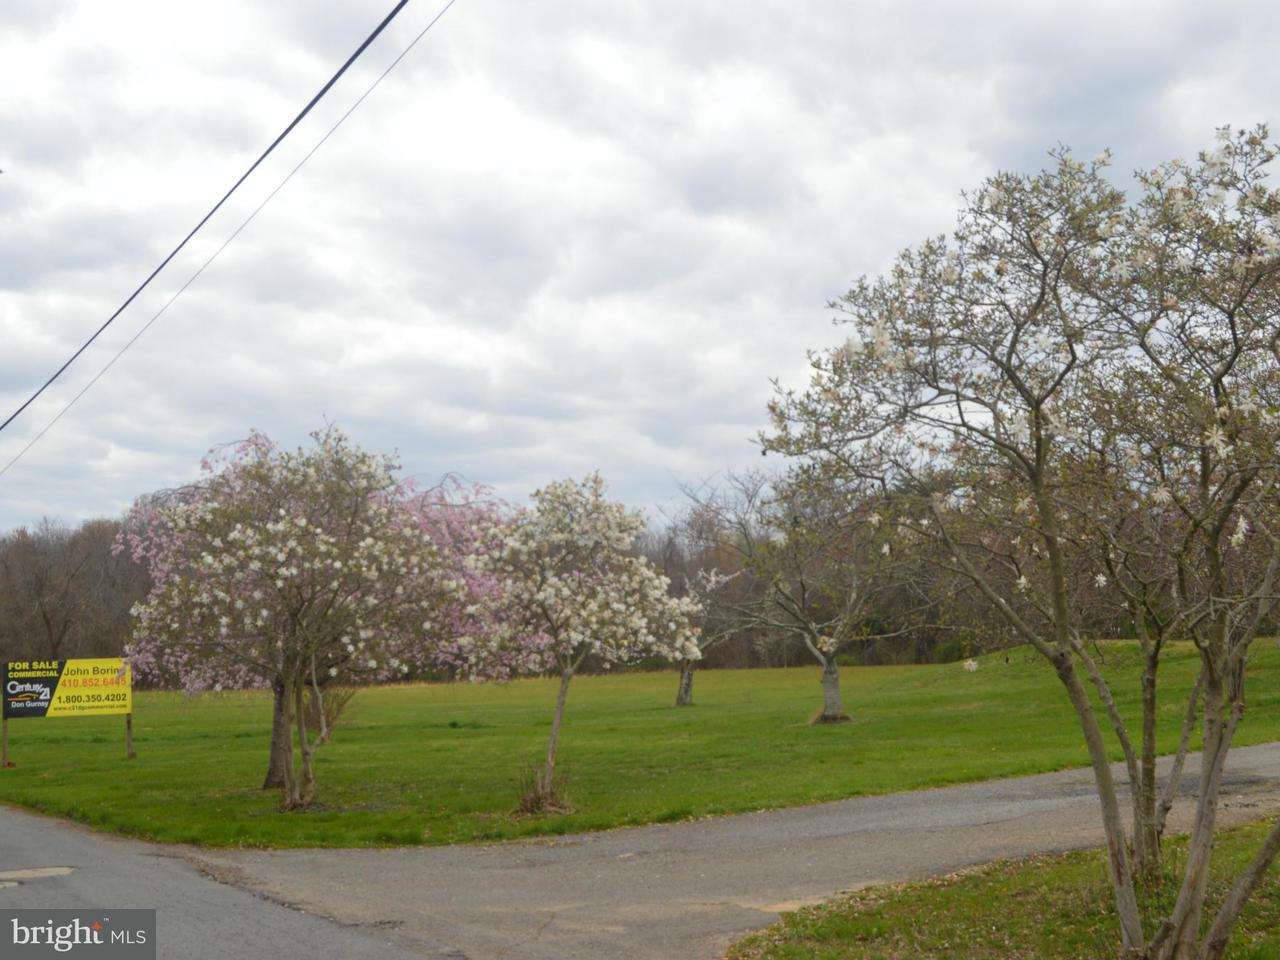 Land for Sale at 7960 MAX BLOBS PARK Road 7960 MAX BLOBS PARK Road Jessup, Maryland 20794 United States